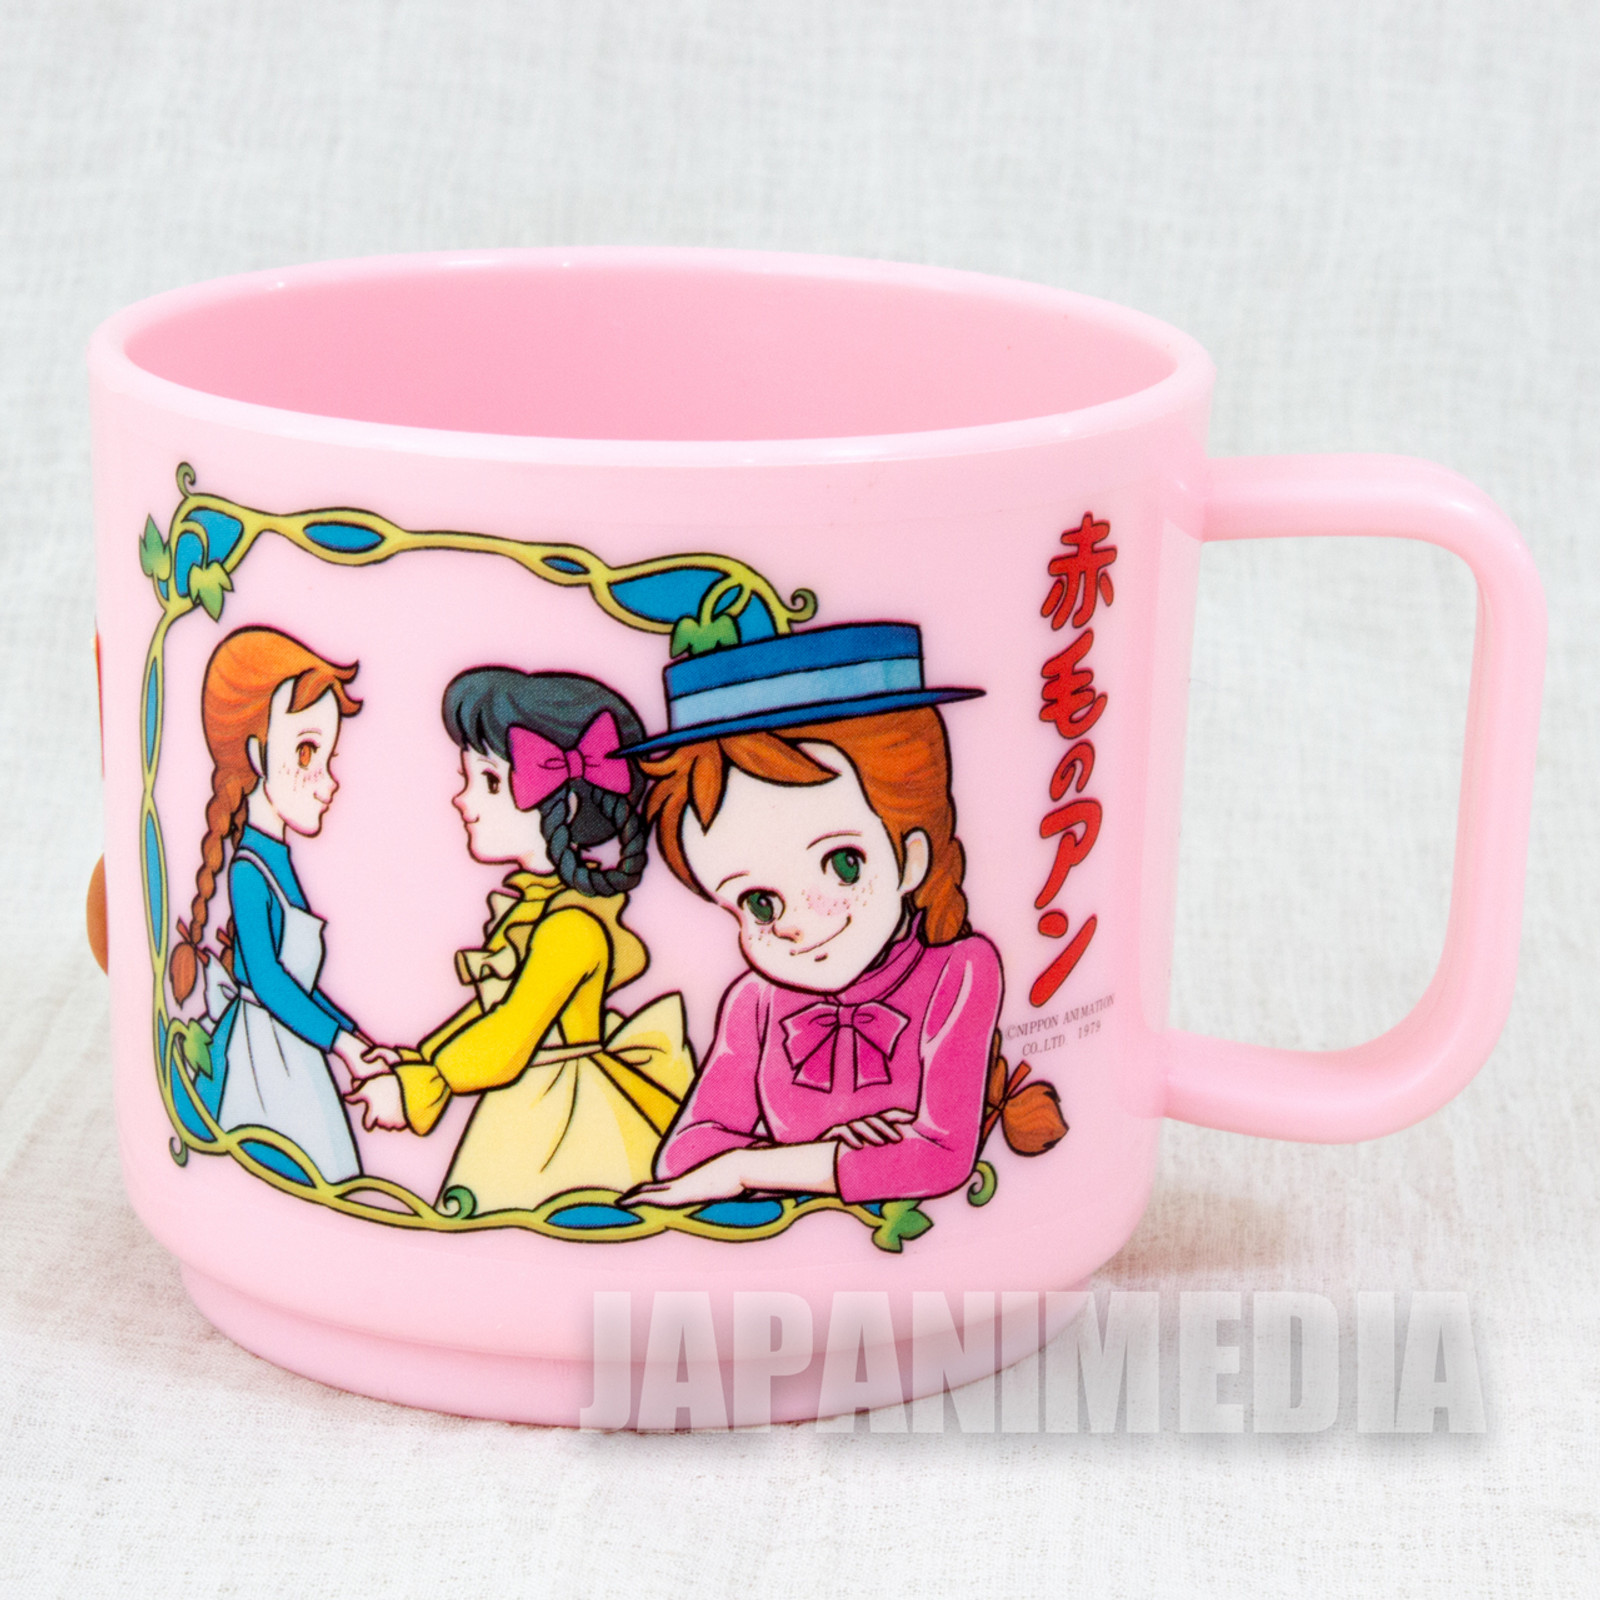 Retro RARE Anne of Green Gables Plastic Mug Akage no An Japanese Animation JAPAN